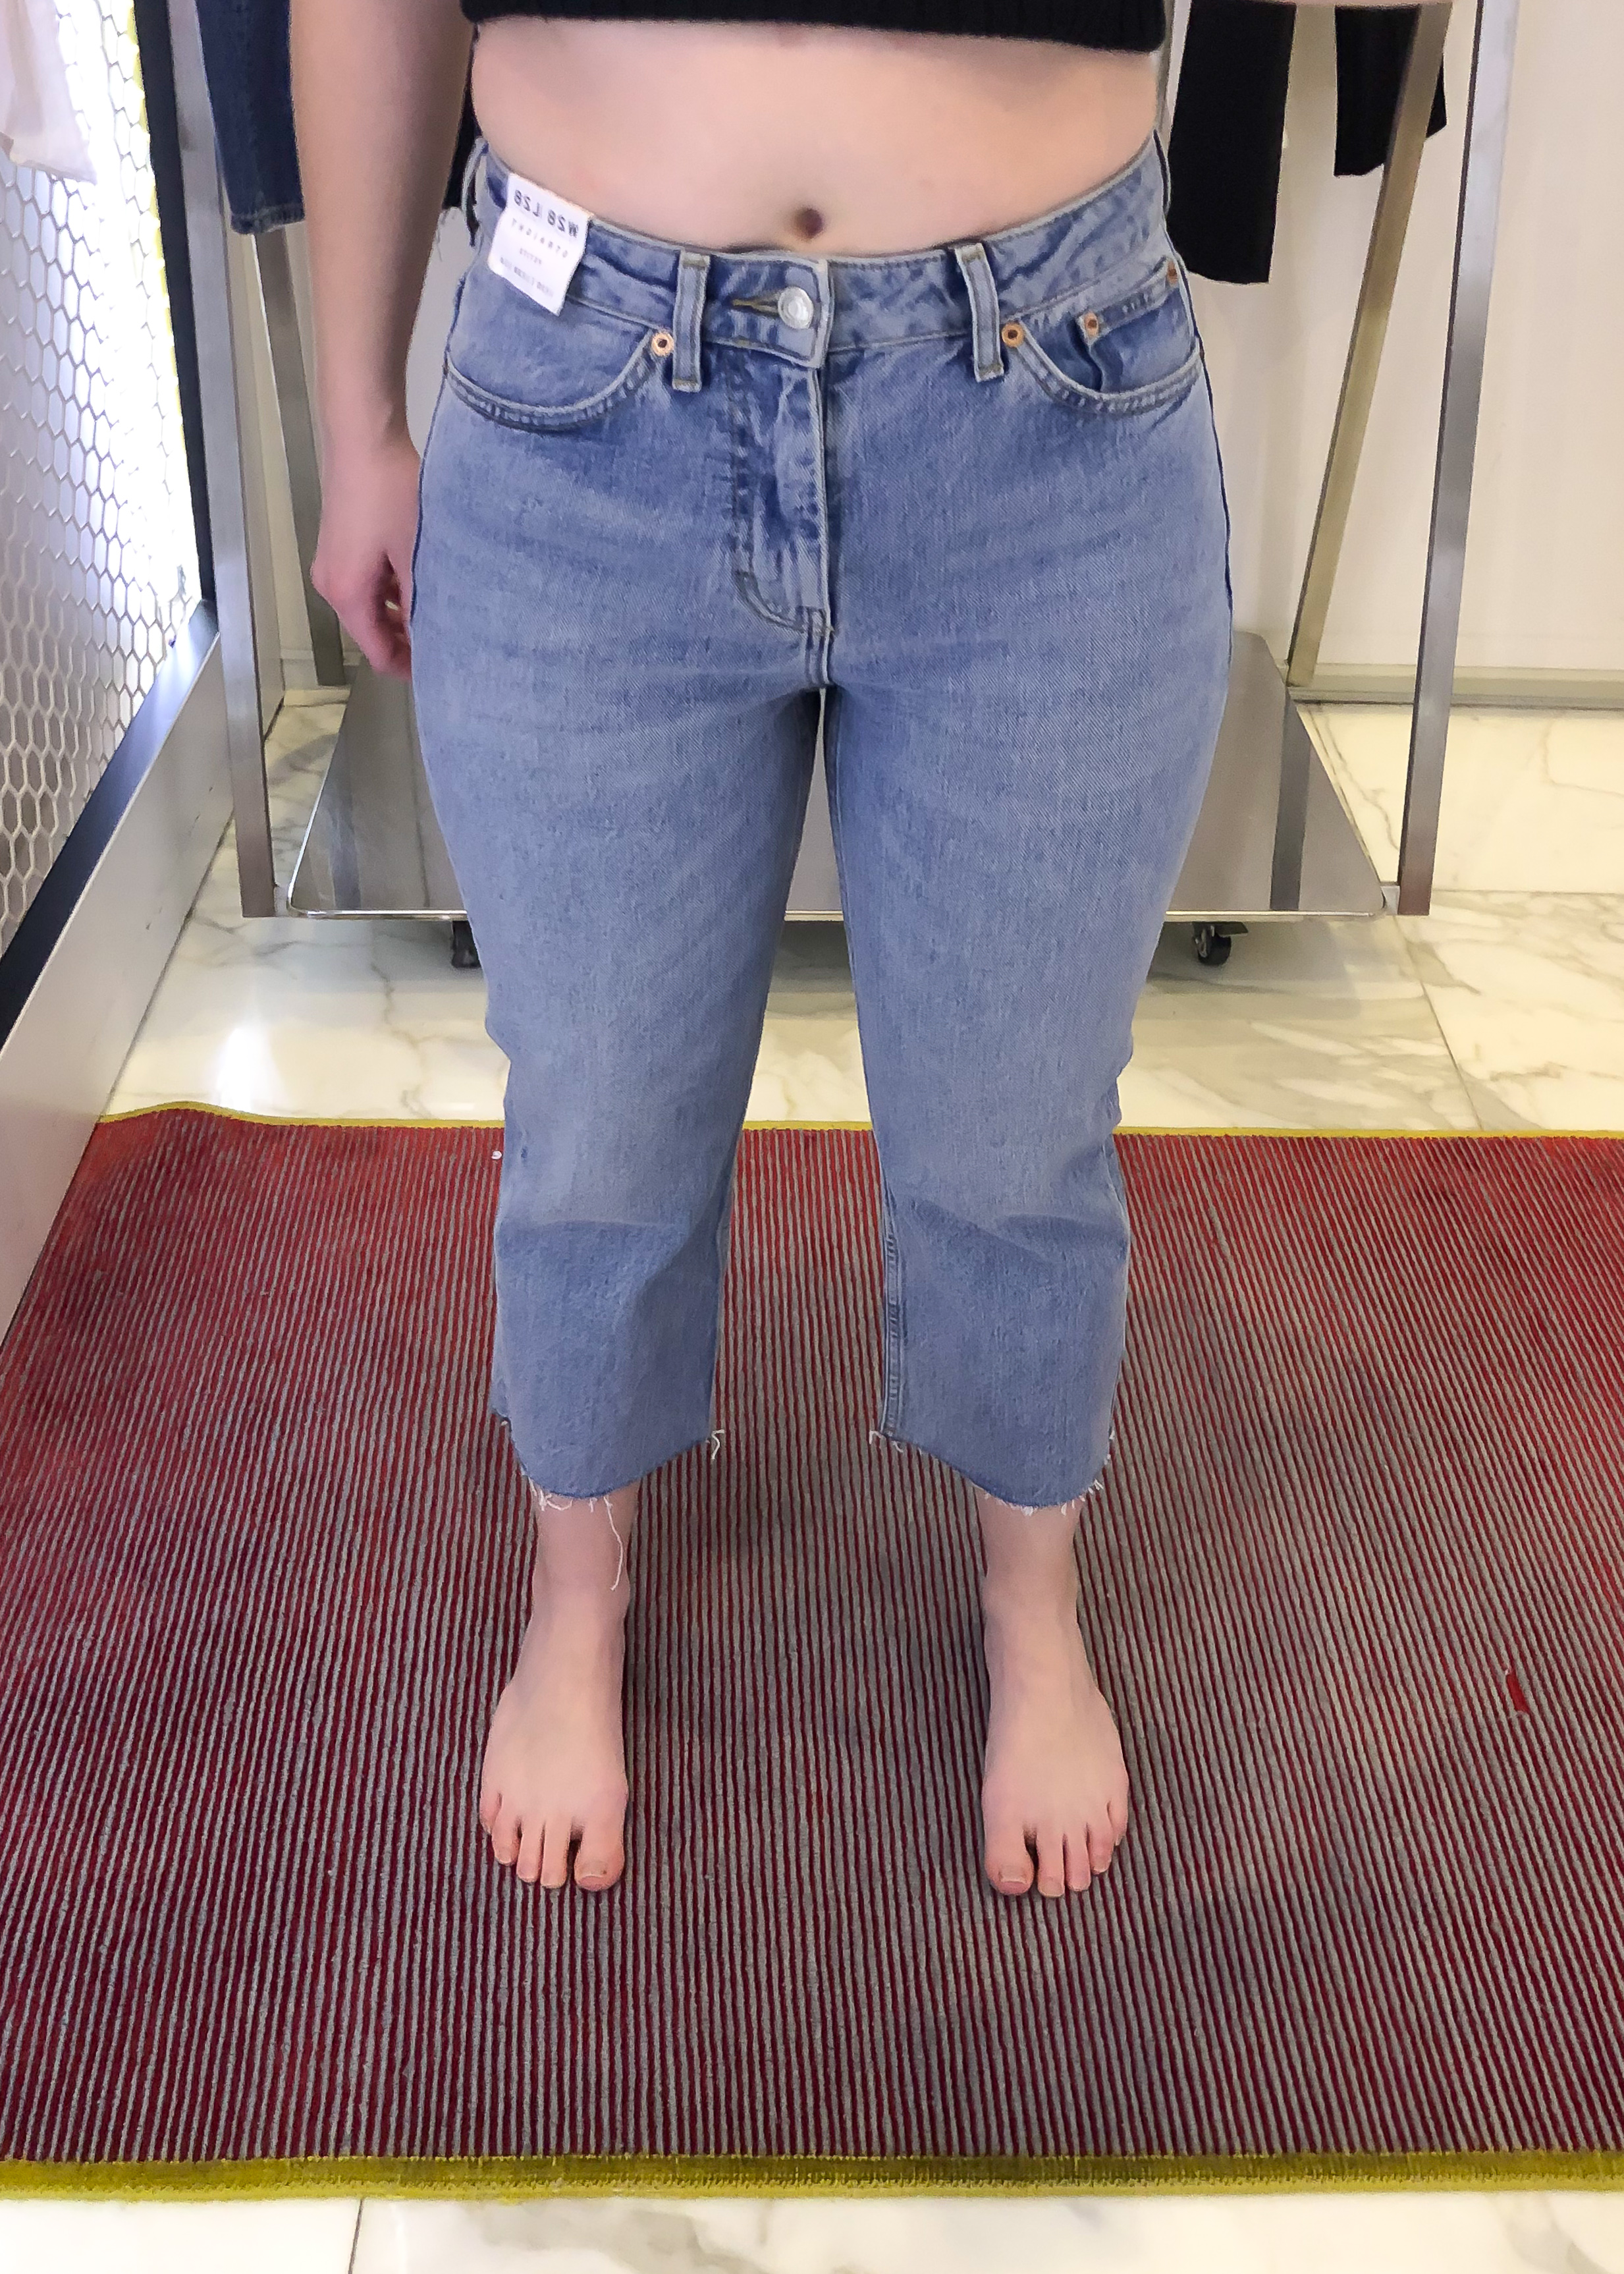 Topshop Straight Jeans - Size 28 x 30